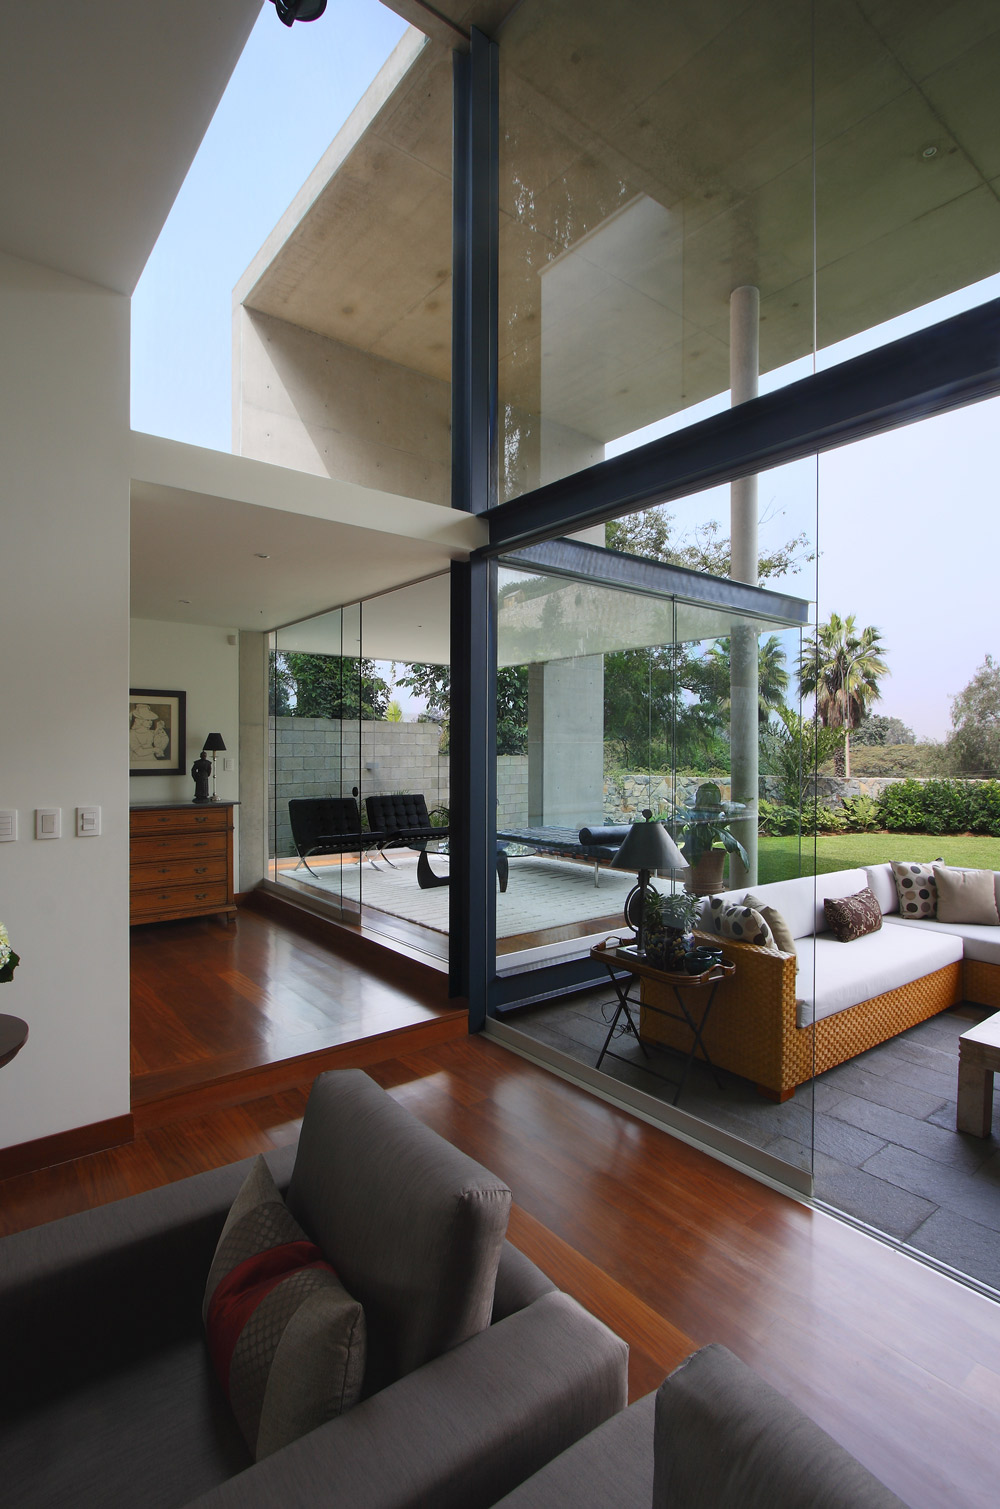 Living Space, Family Home in Lima, Peru